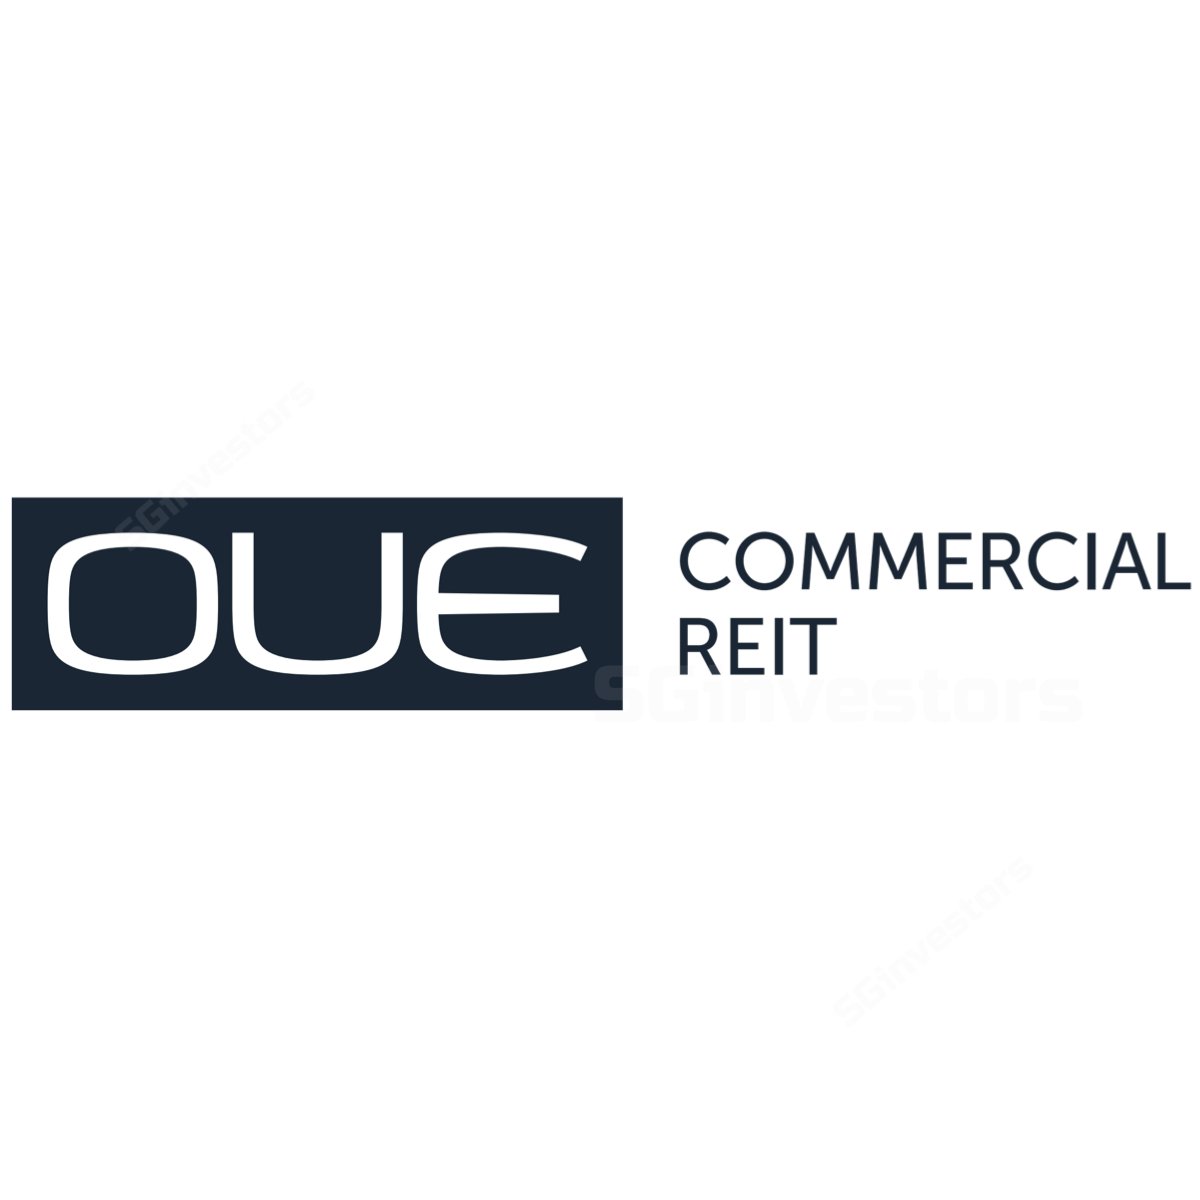 OUE Commercial REIT - DBS Vickers 2017-11-10: Holding Pattern For Now